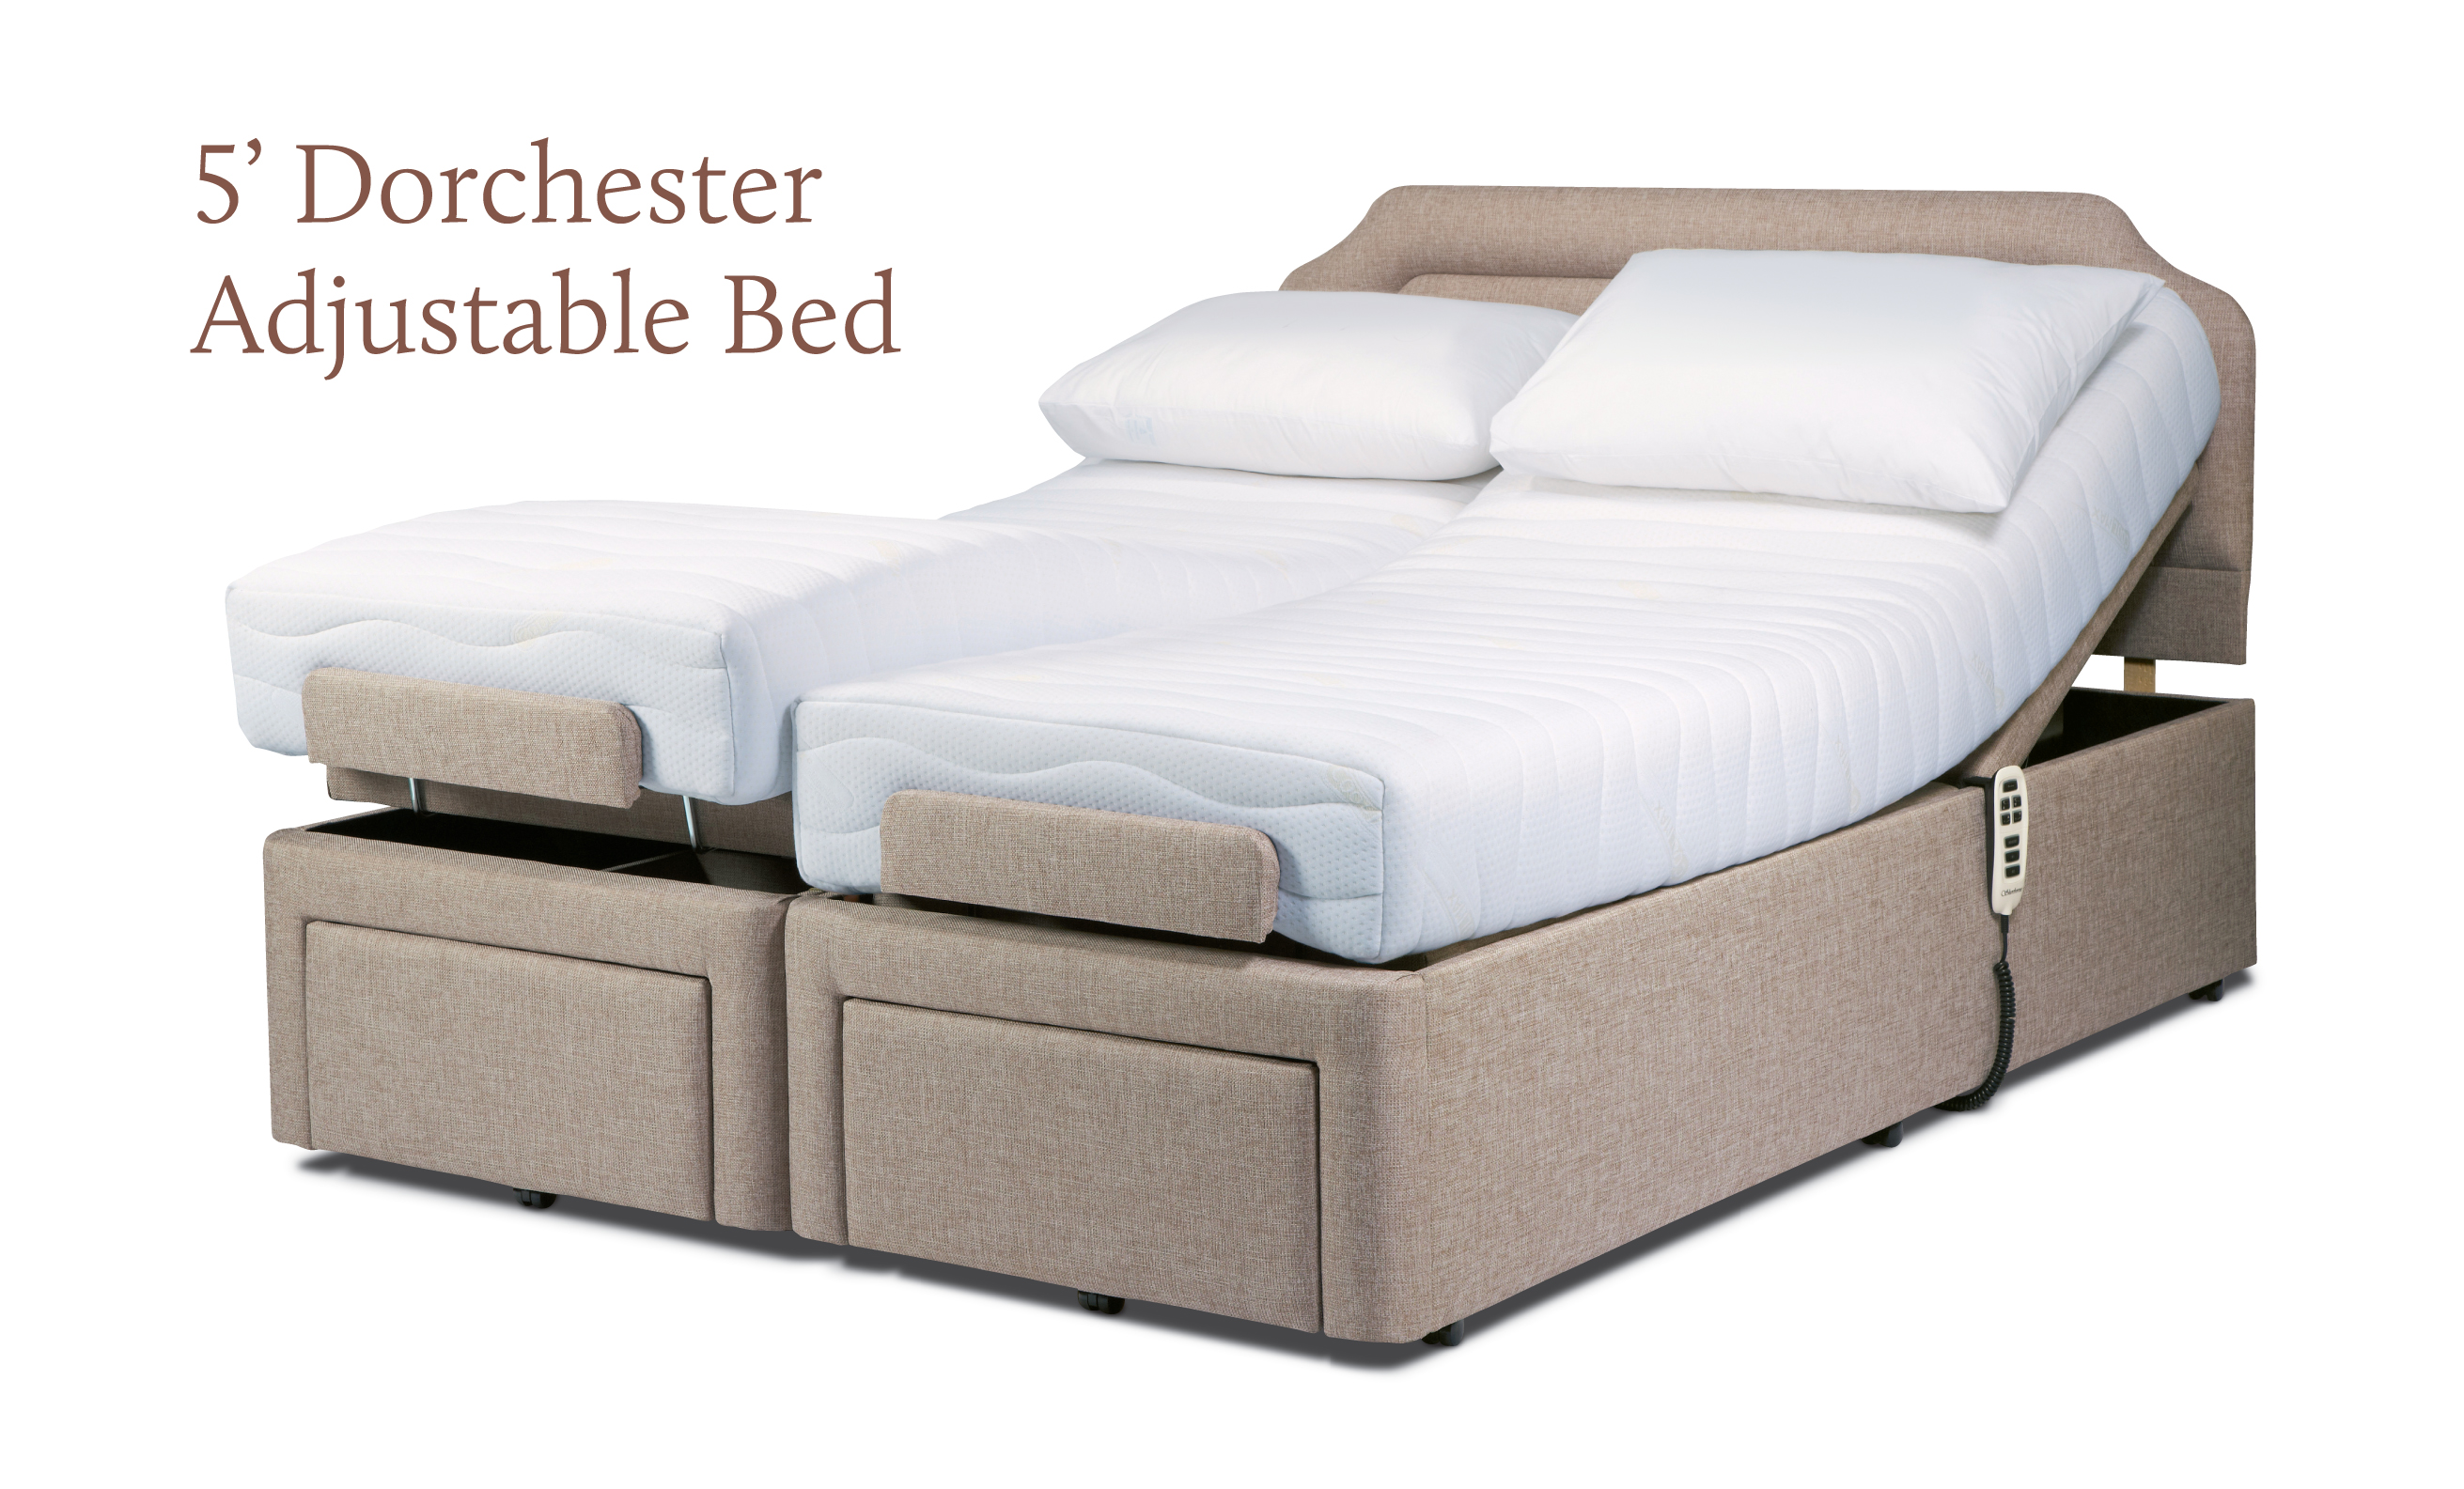 Freedom Bed Head Electric Hospital Beds And Mobility Beds In Norfolk